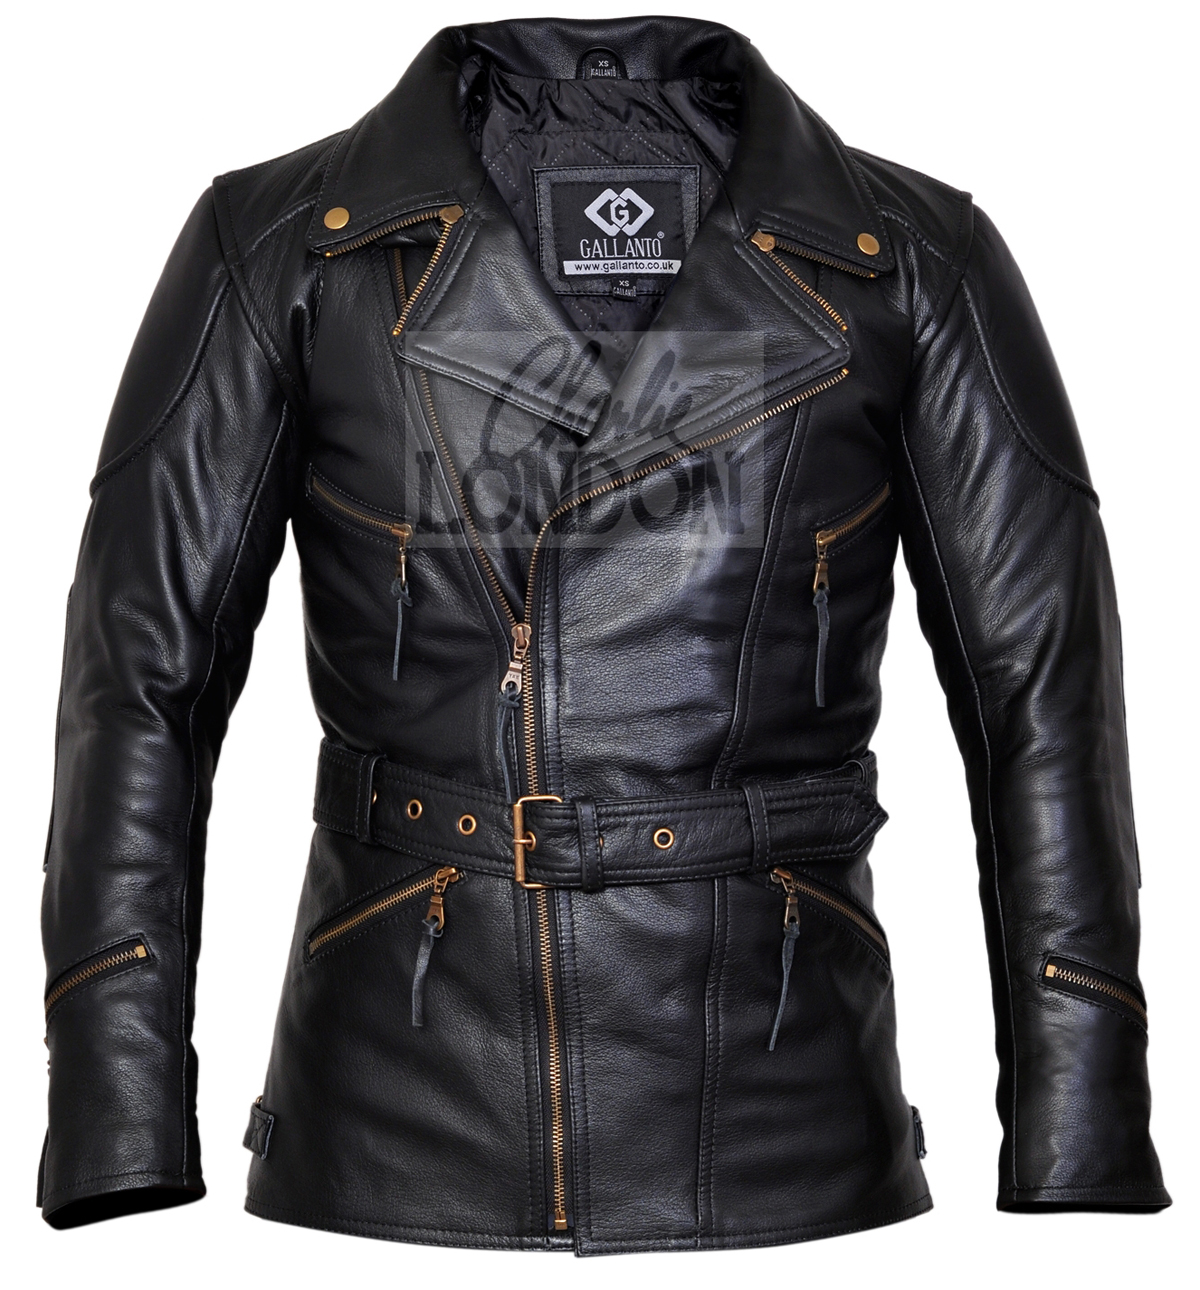 3/4 Eddie Black Long Motorcycle Jacket